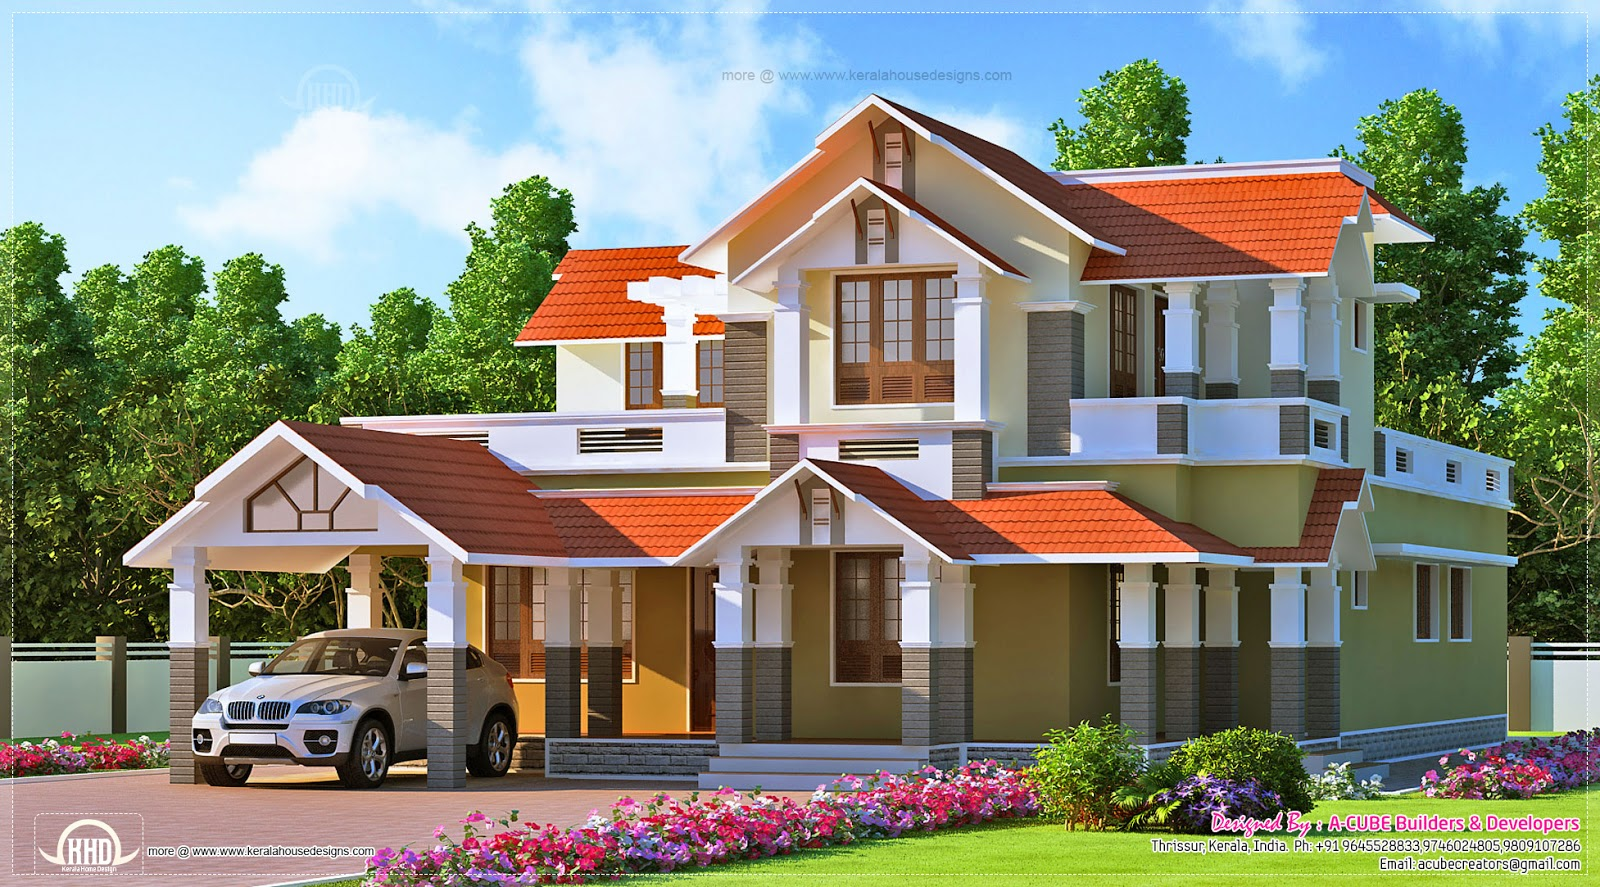 Kerala Style Dream Home Design In 2900 House: my home plan